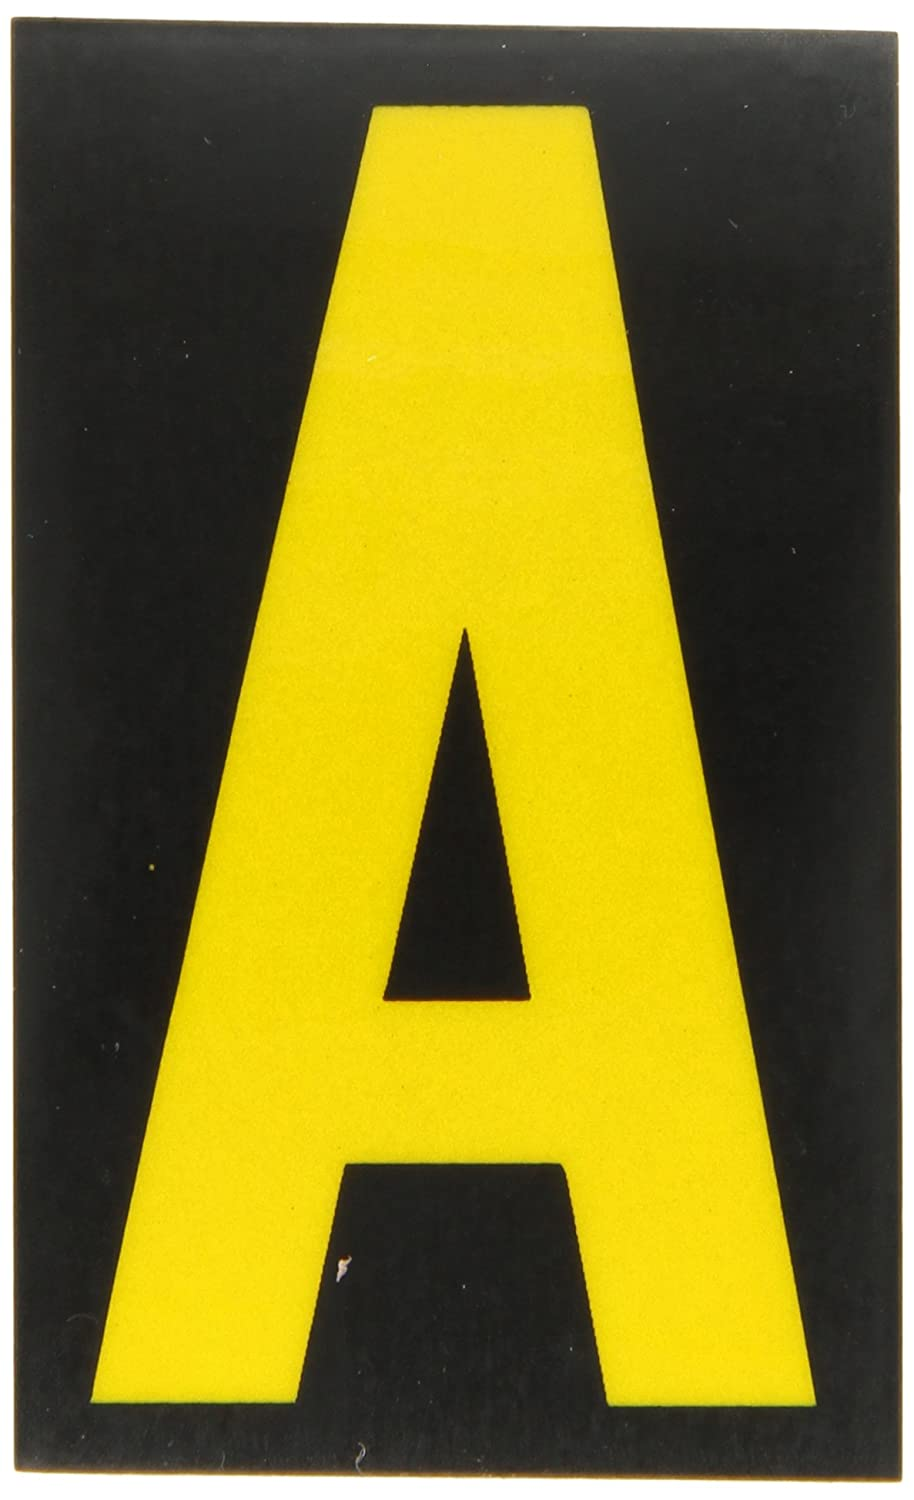 Brady 5000-S 2-7//8 Height 1-3//4 Width B-997 Engineering Grade Bradylite Reflective Sheeting Yellow On Black Color Reflective Letter Legend S Pack Of 25